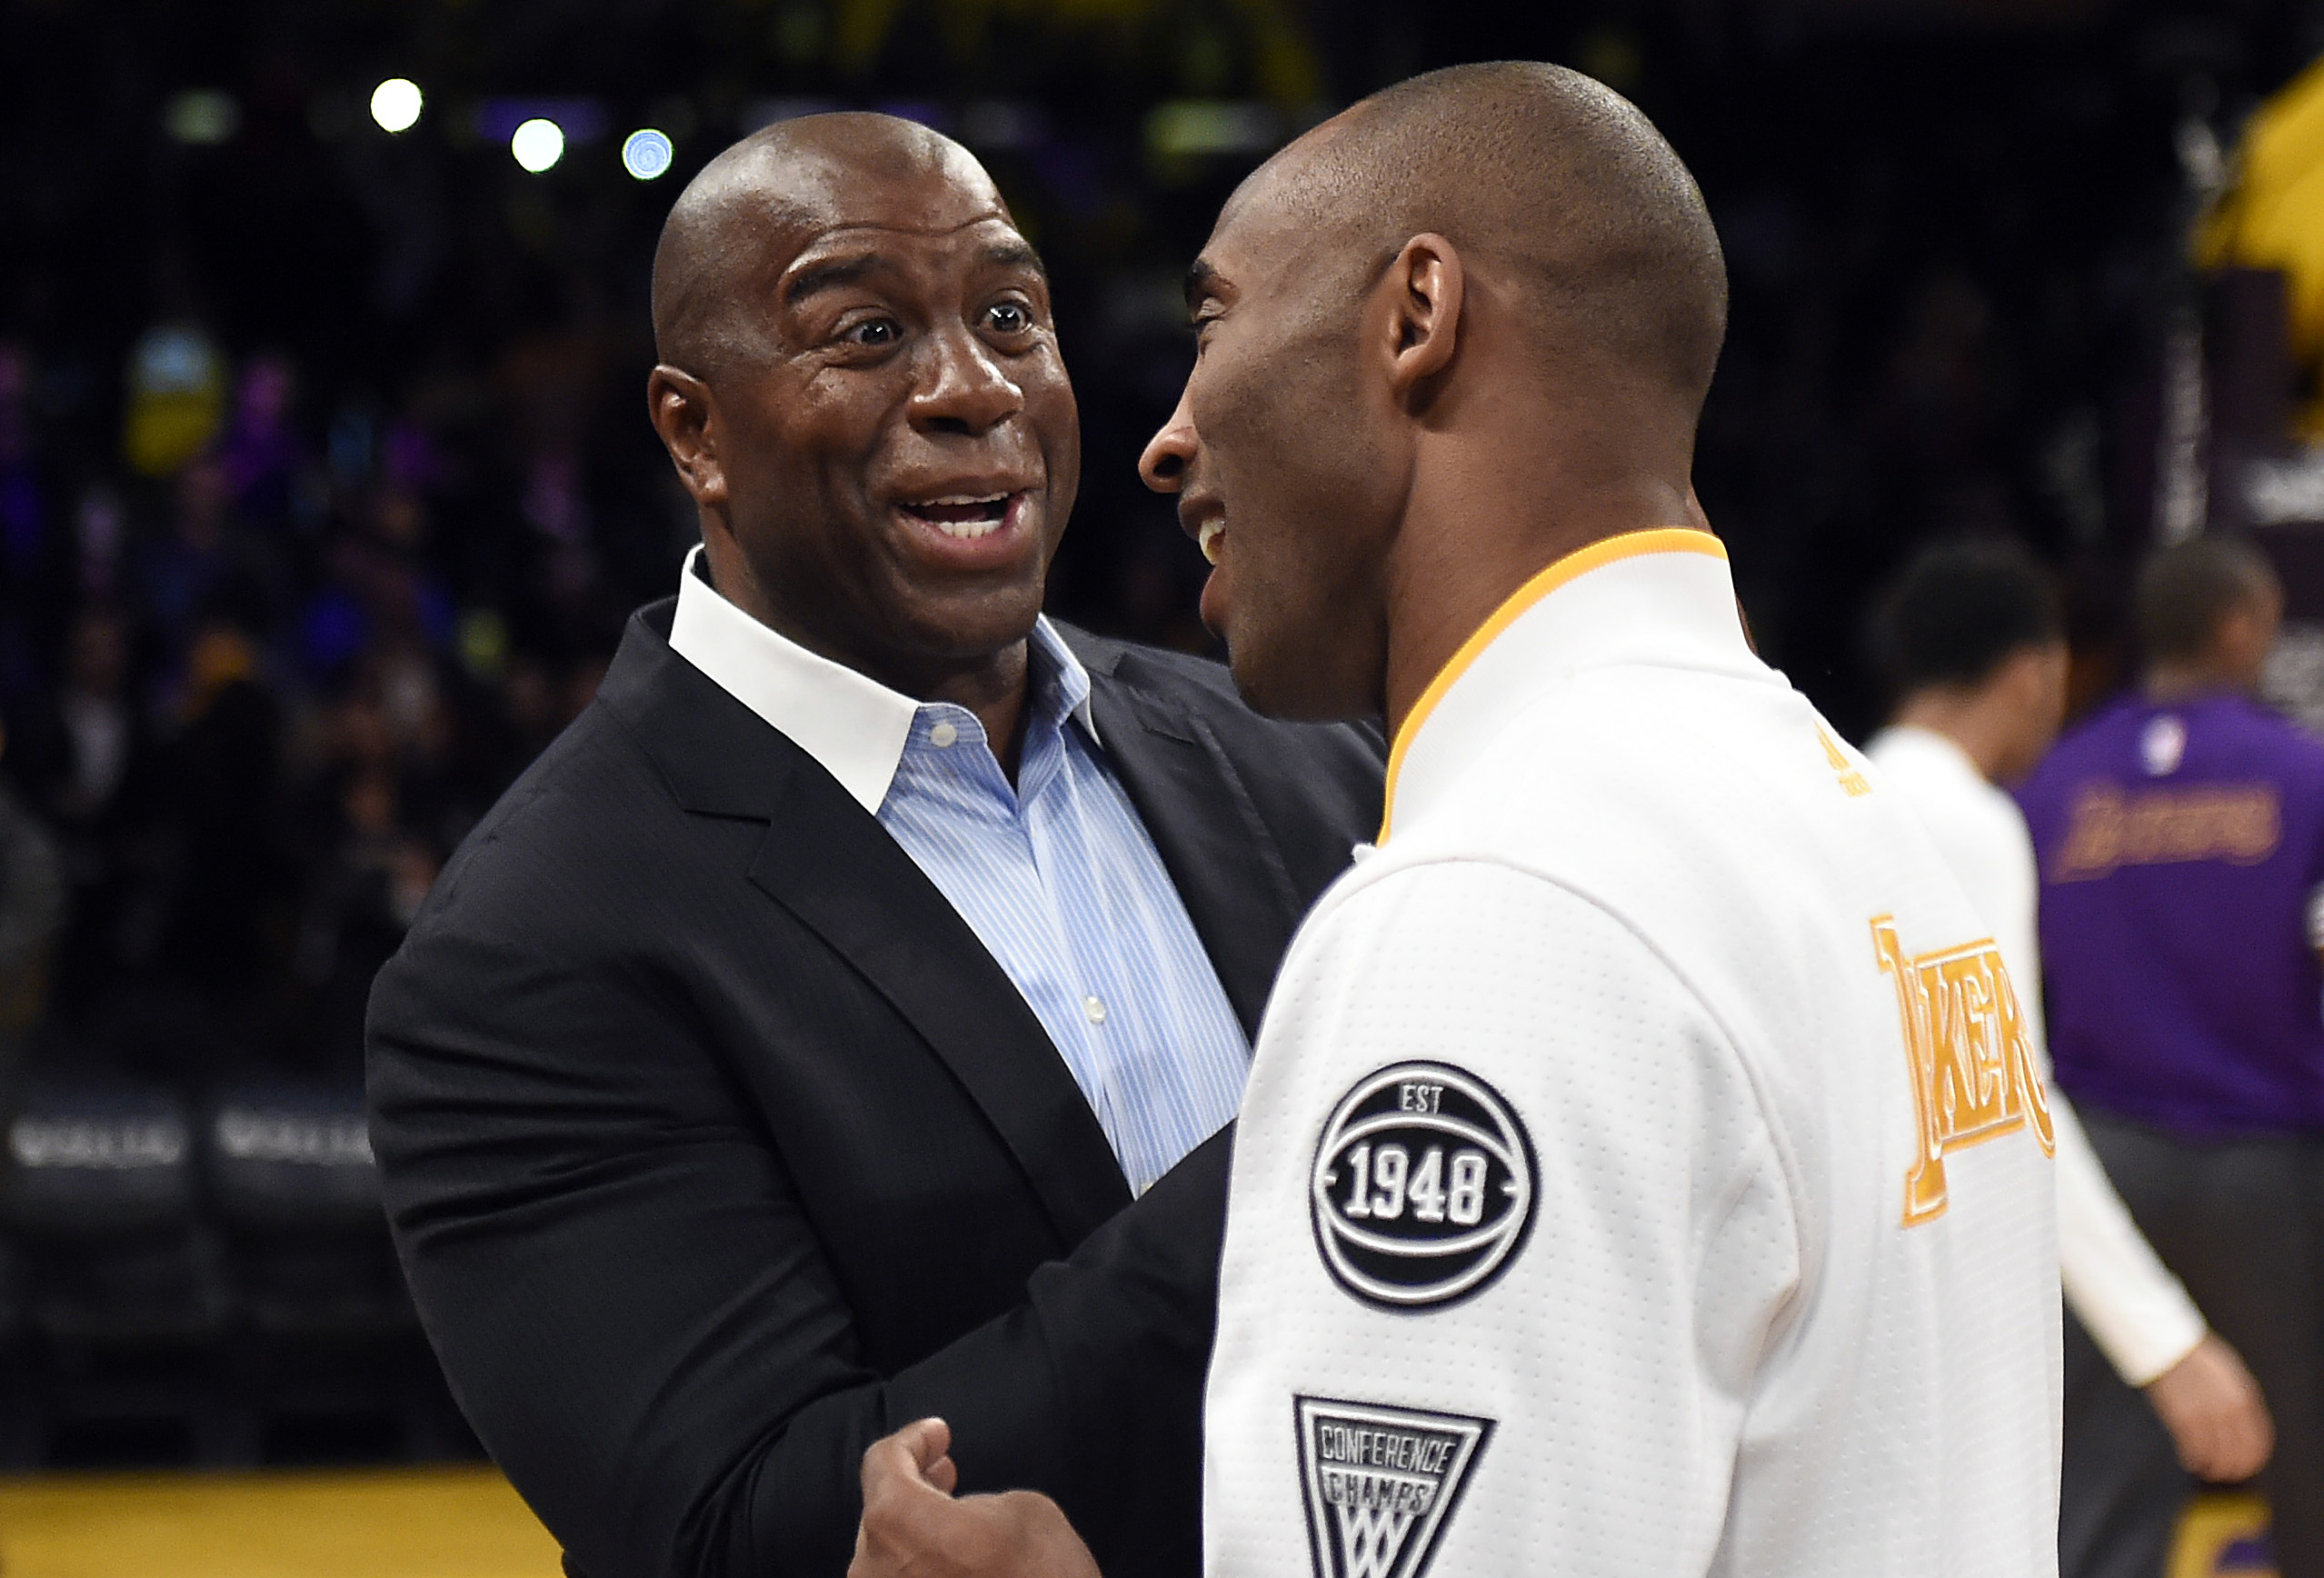 Jan 31, 2016; Los Angeles, CA, USA; Los Angeles Lakers forward Kobe Bryant (24) and Los Angeles Lakers former player Magic Johnson talk before the game against the Charlotte Hornets at Staples Center. Mandatory Credit: Richard Mackson-USA TODAY Sports